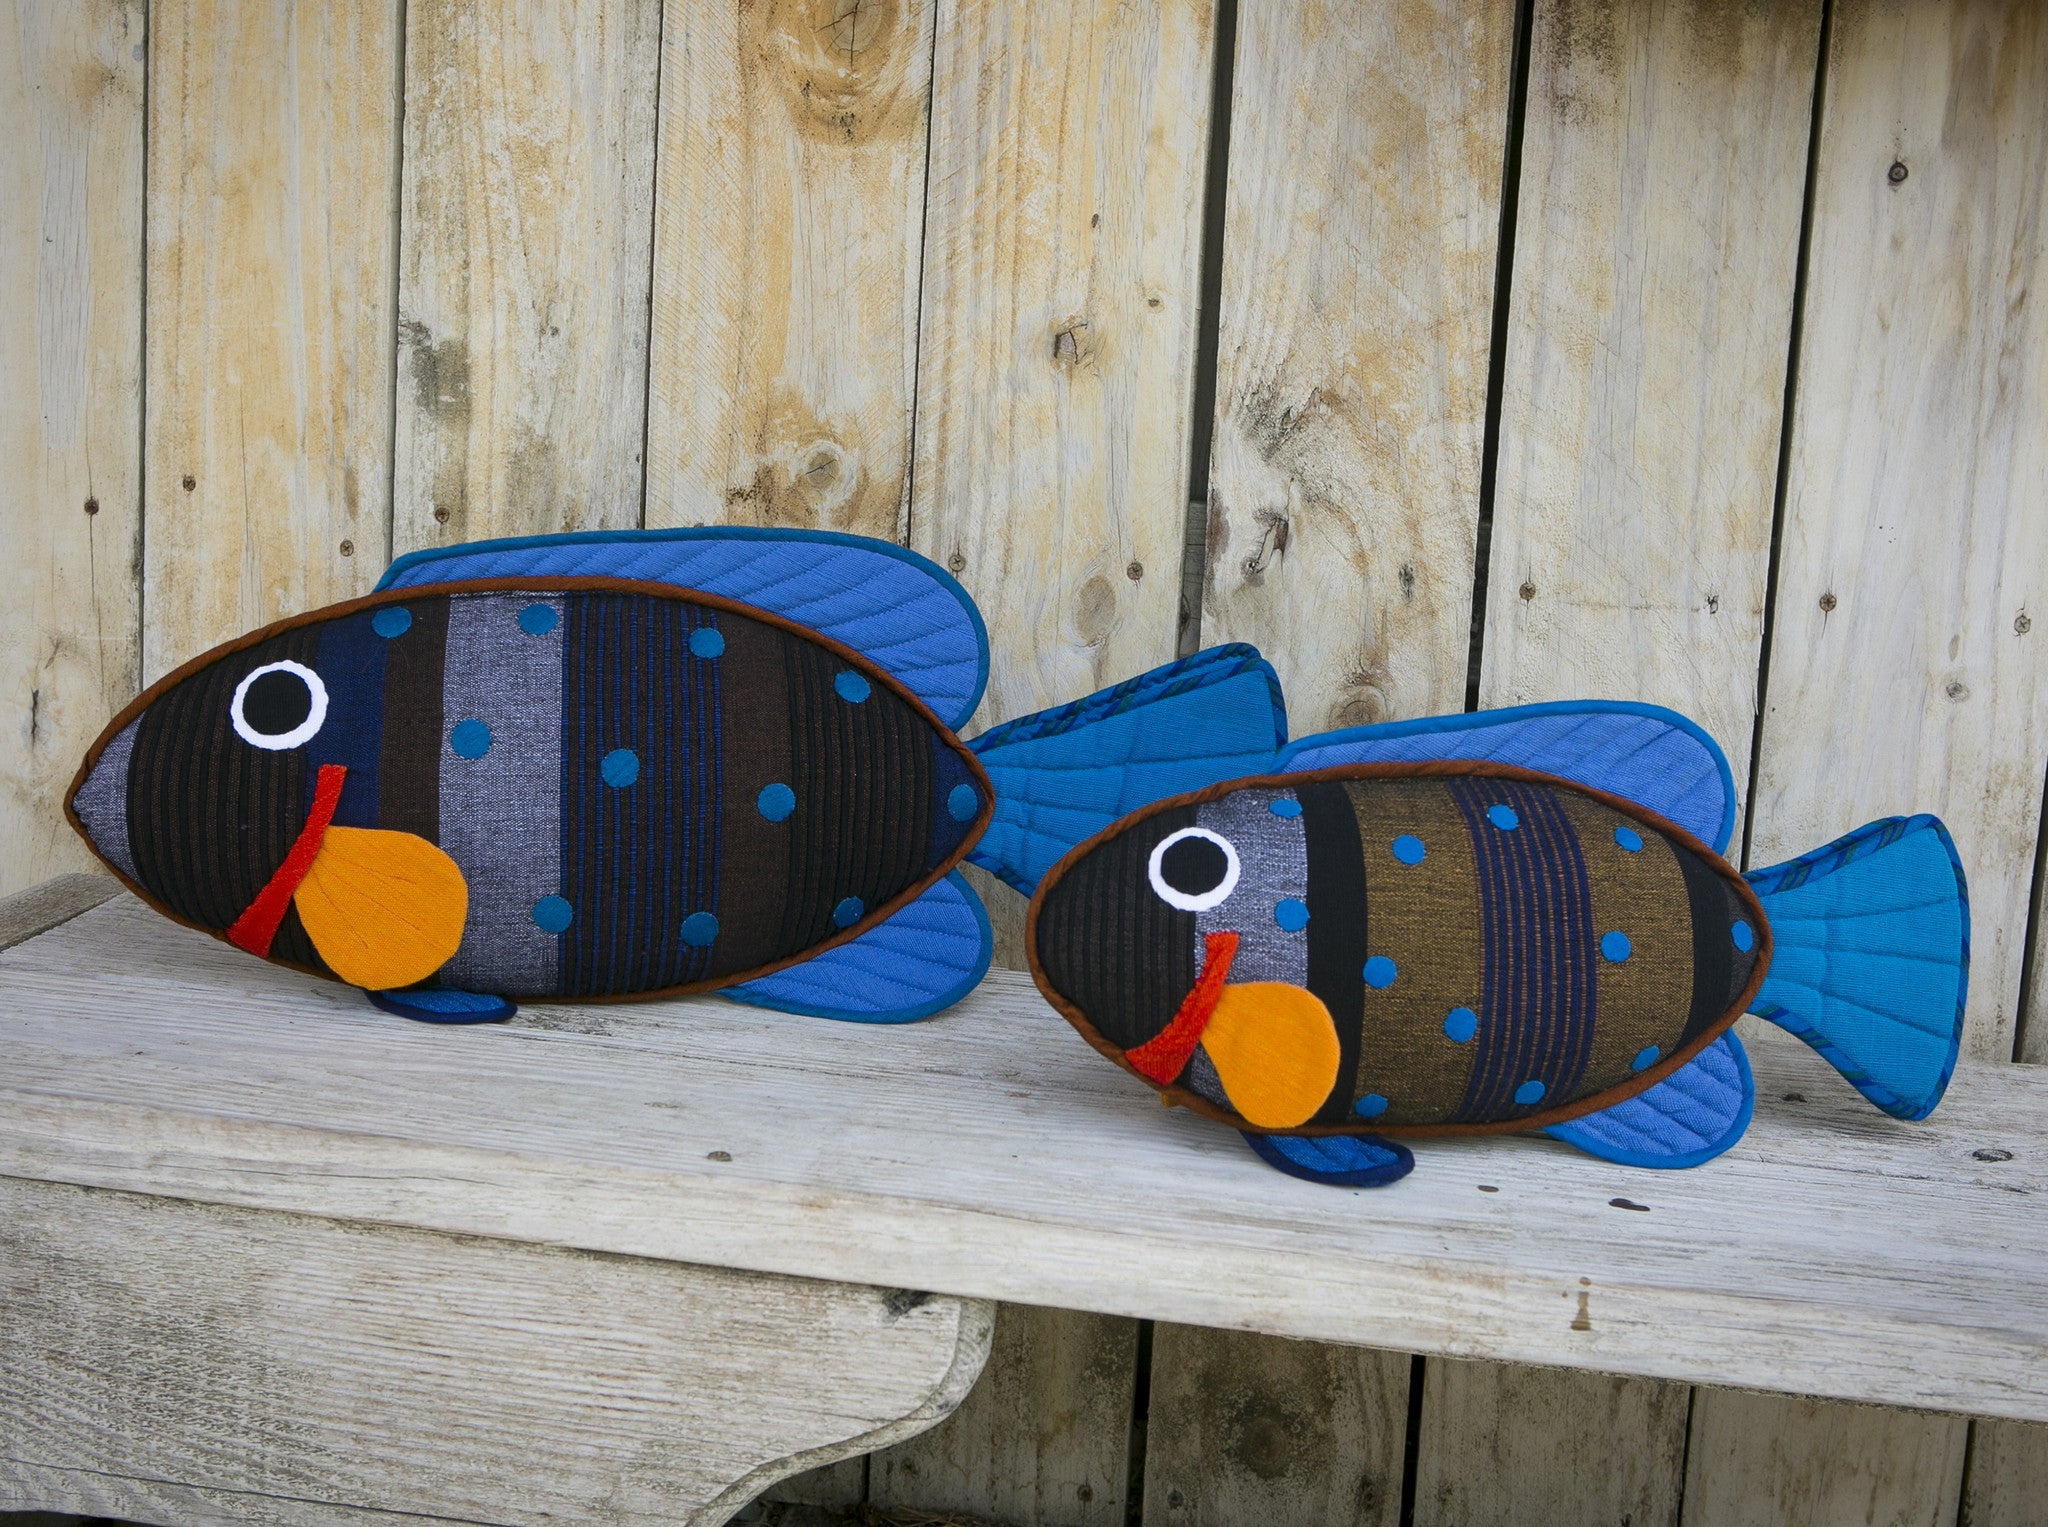 Willy, the Peacock Rock Cod – Relaxing on the bench! (small & large sizes)